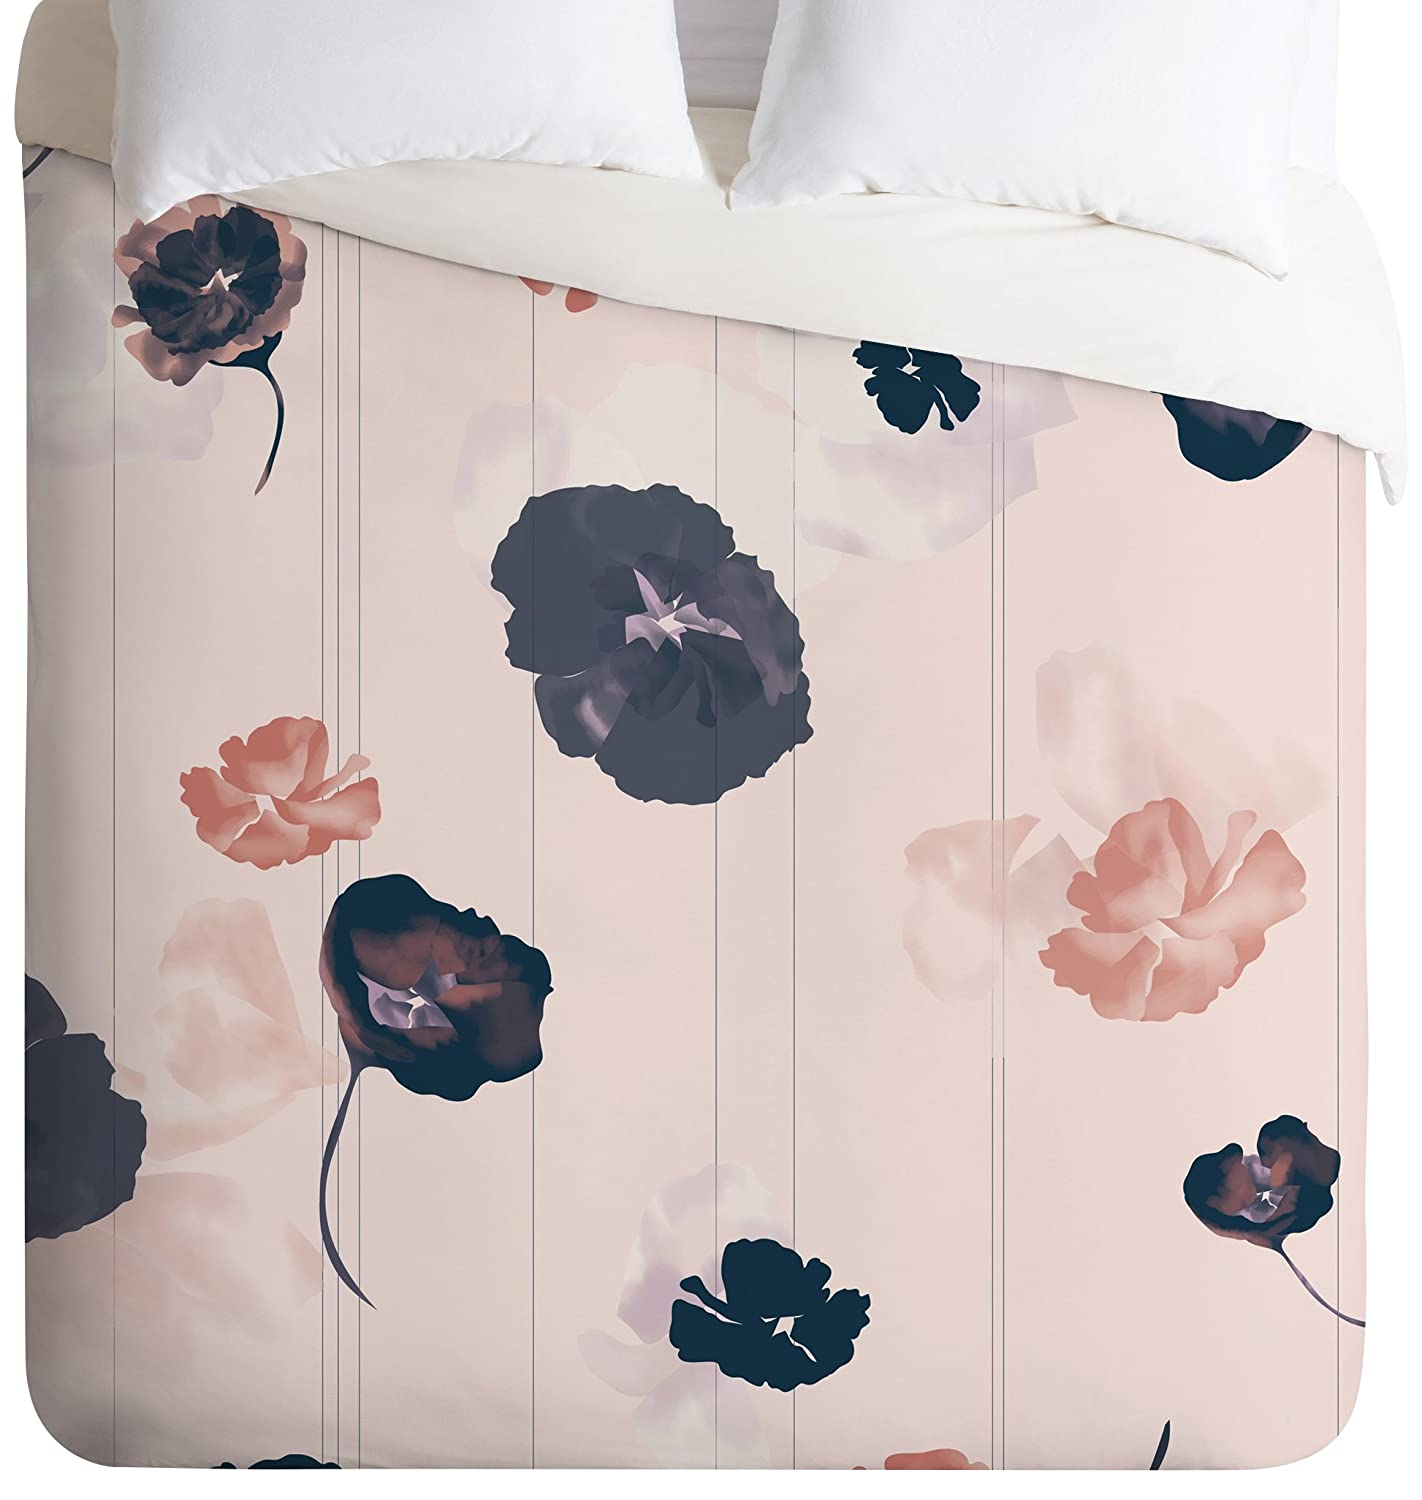 Deny Designs Khristian A Howell Mademoiselle In Pink Duvet Cover, Queen